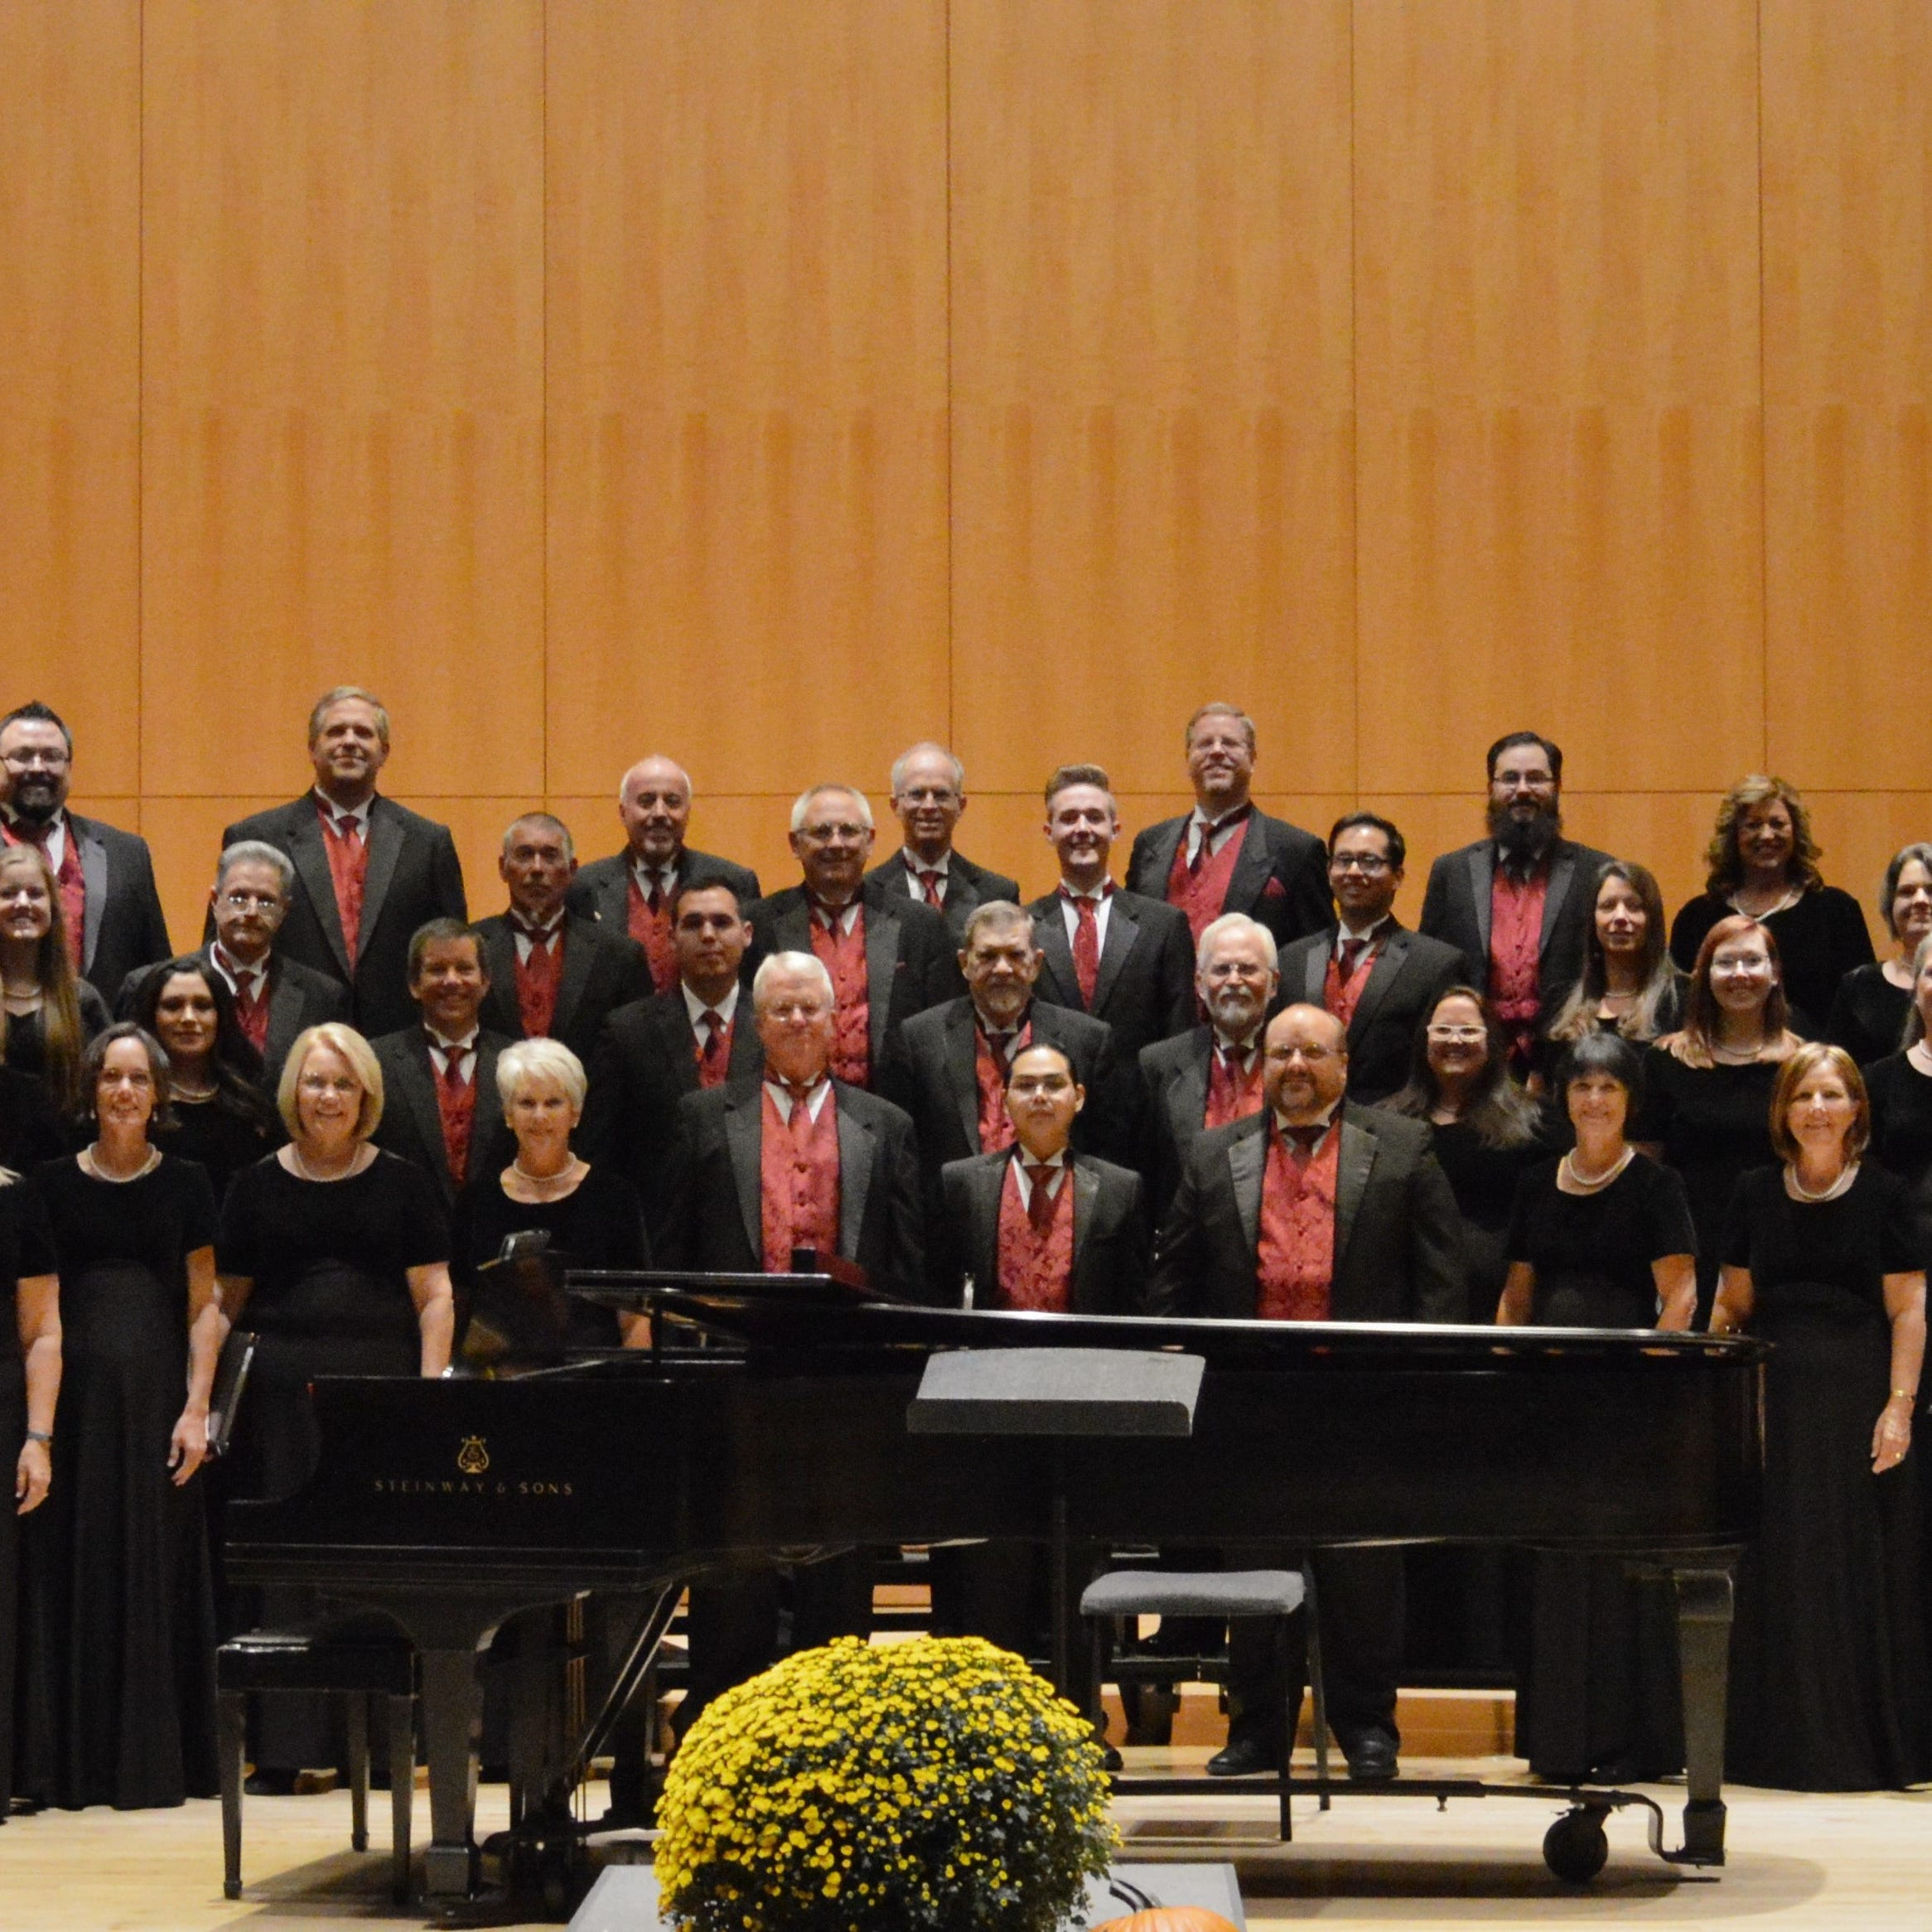 LietoVoices! Christmas concerts to ring in season